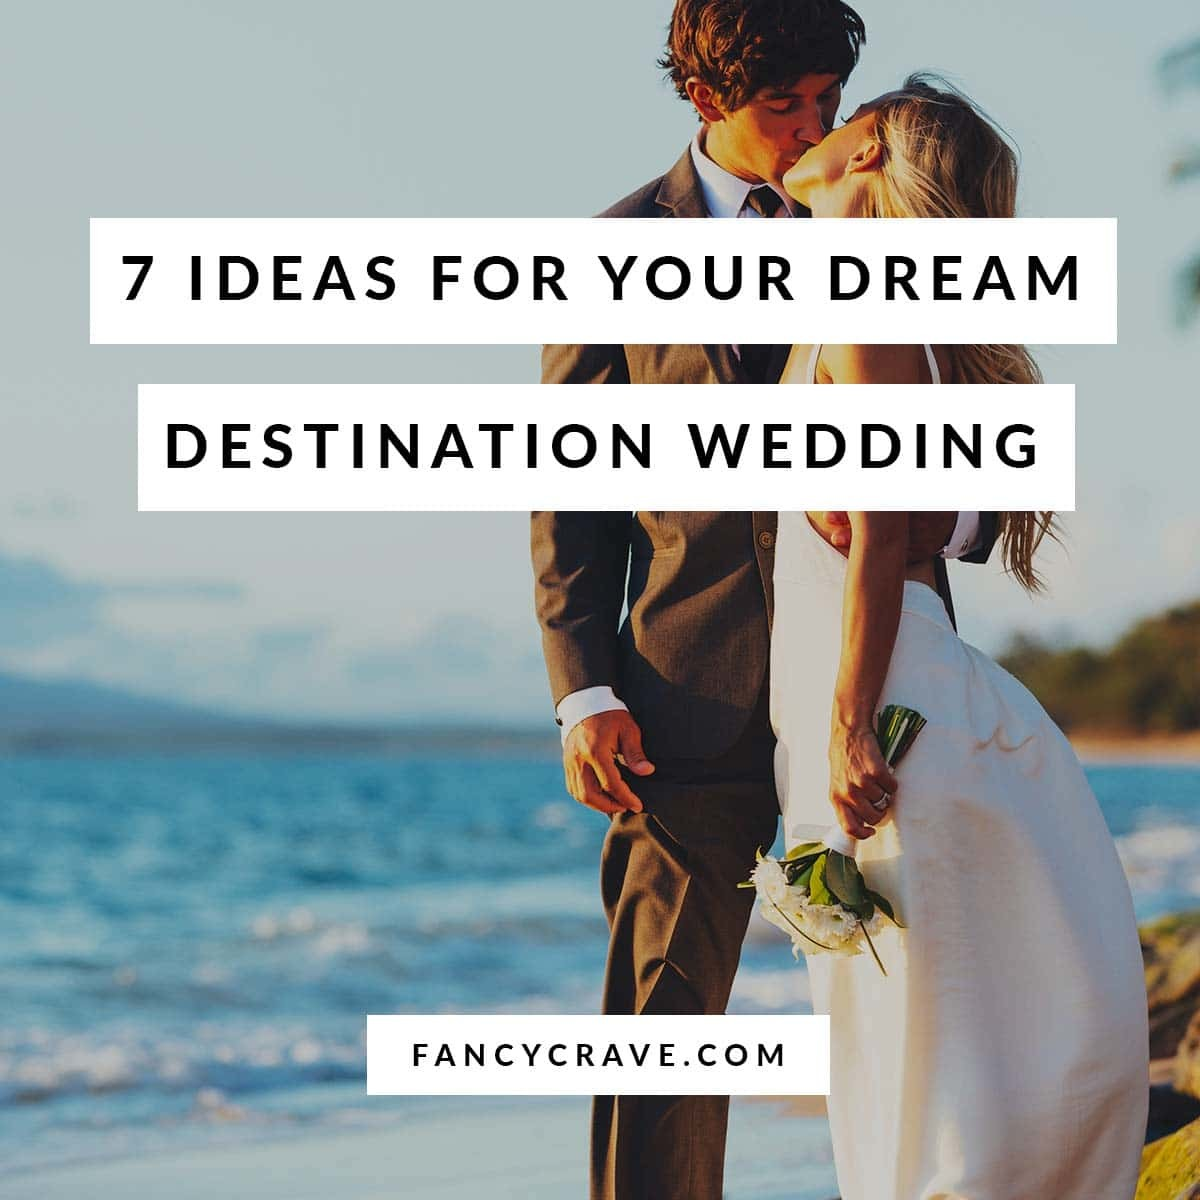 Dream-Destination-Wedding-min